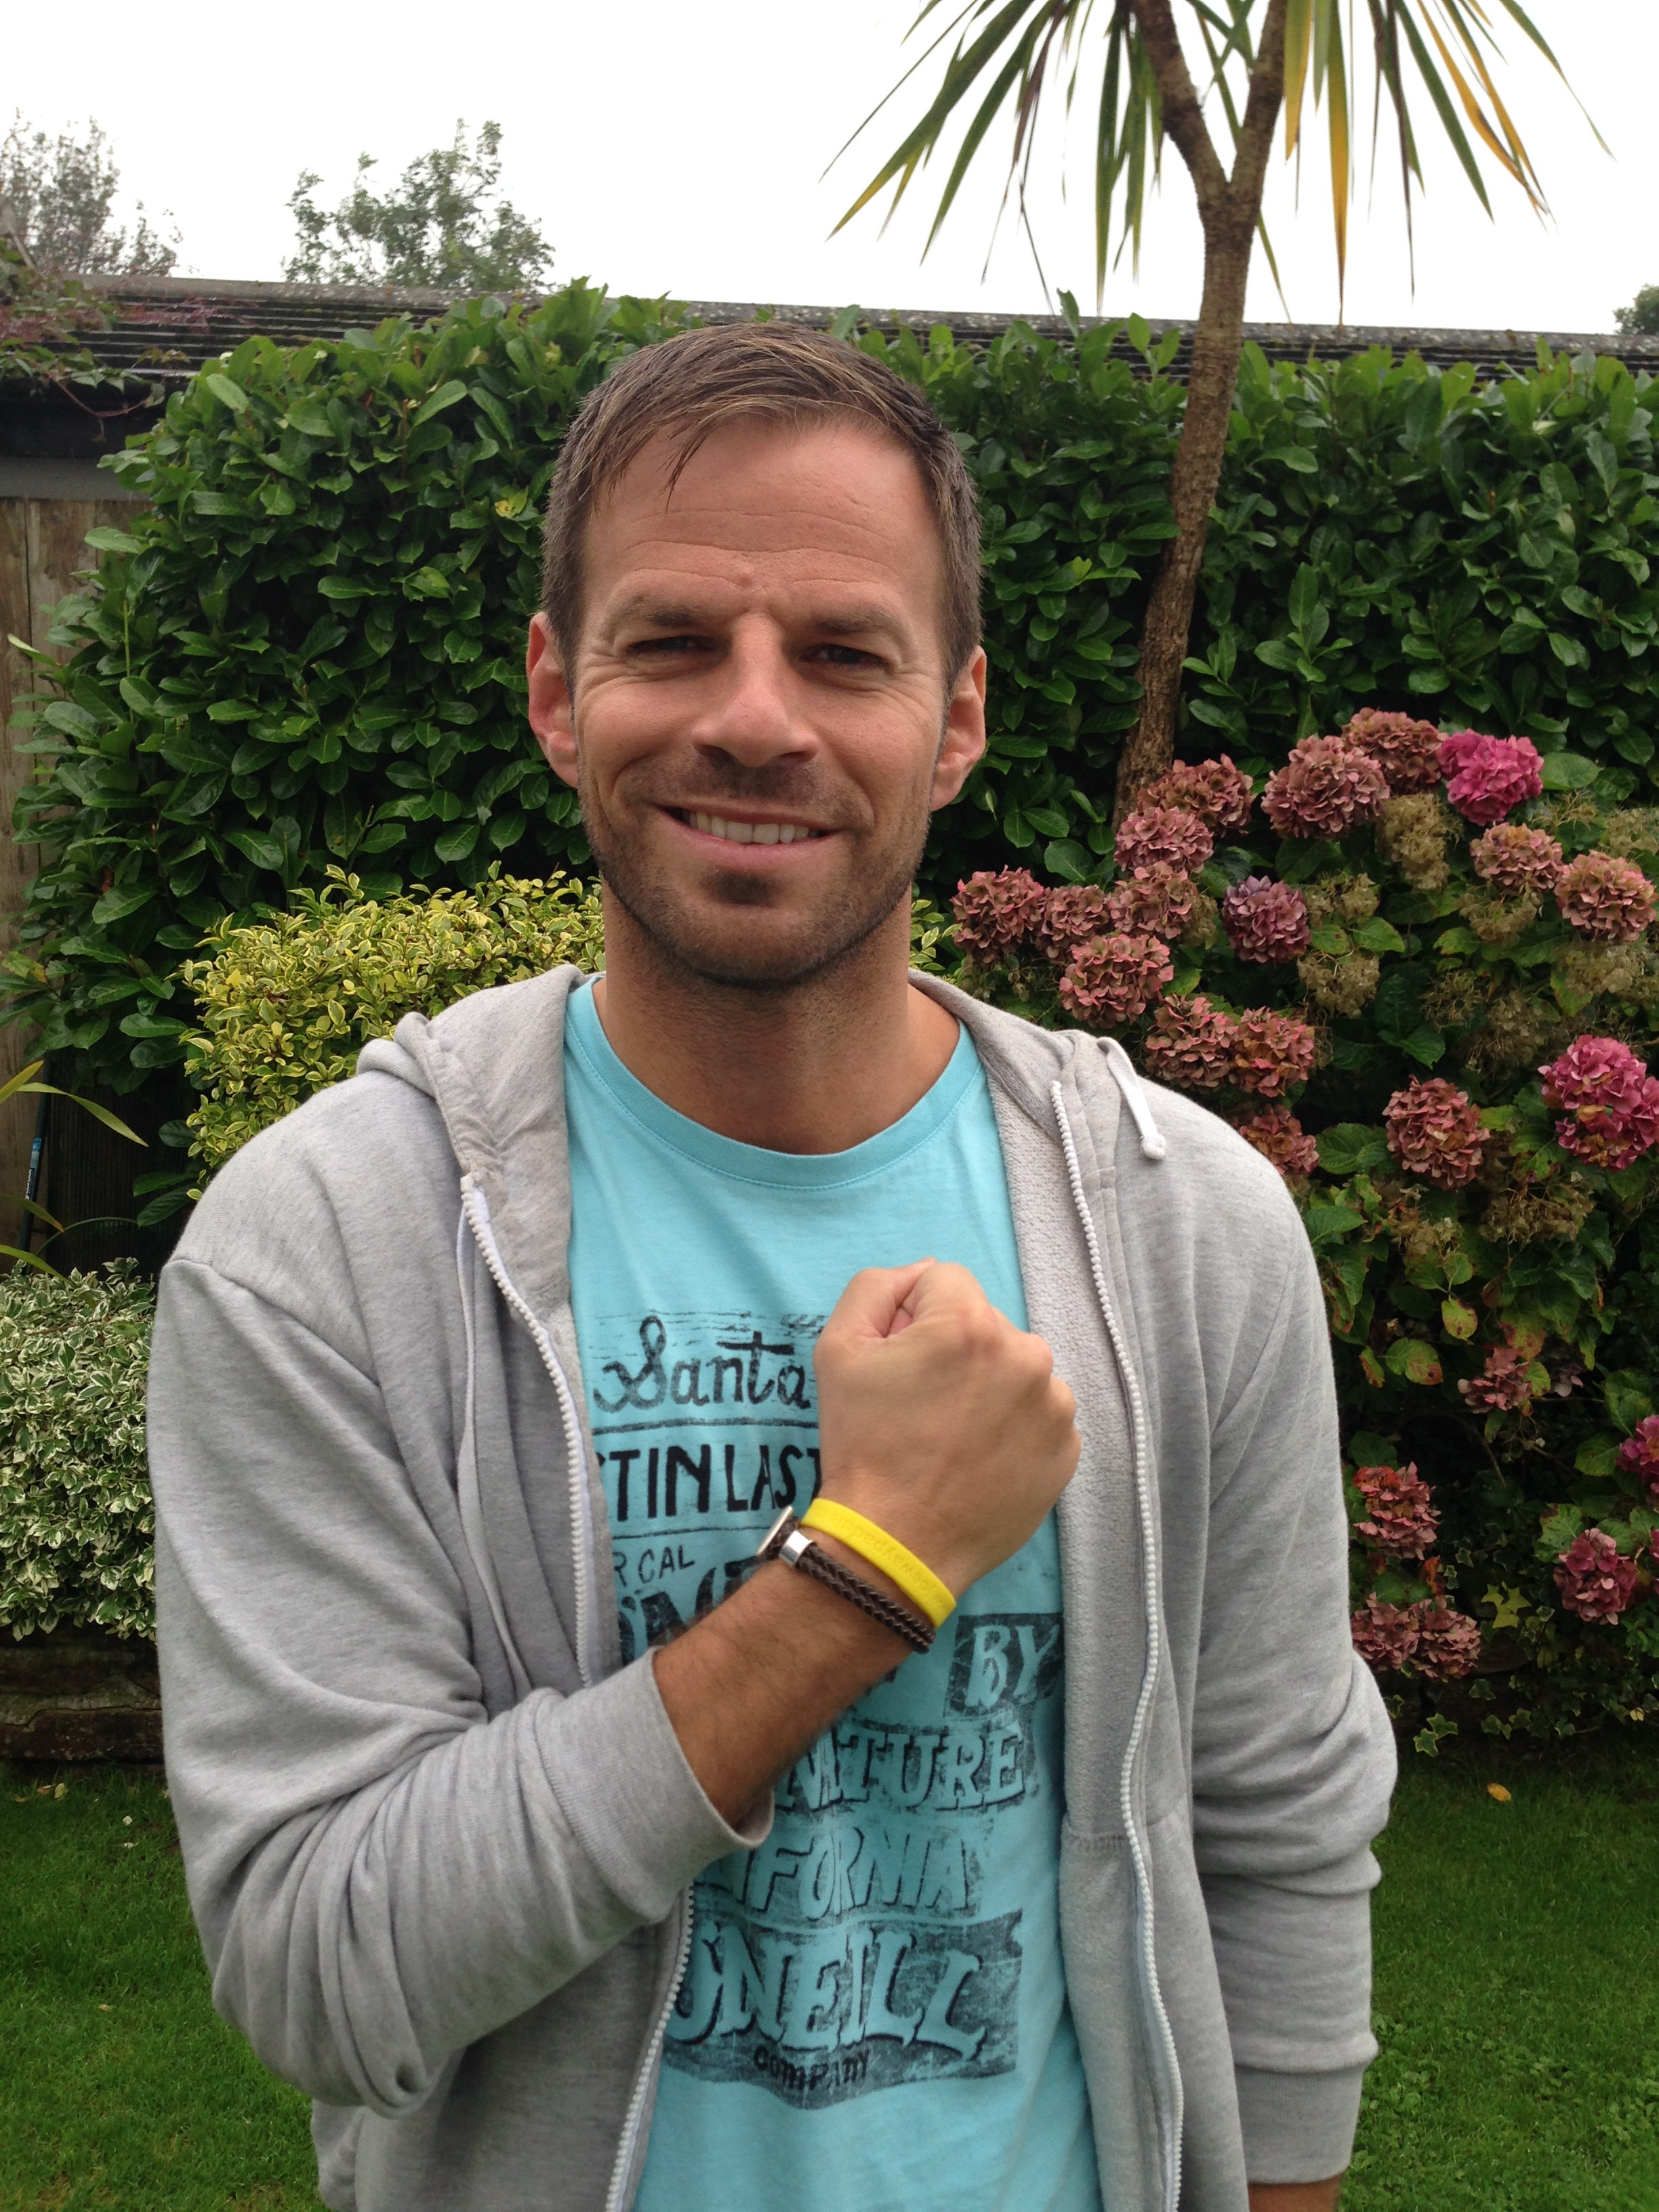 ben richards with his paddle wrist band